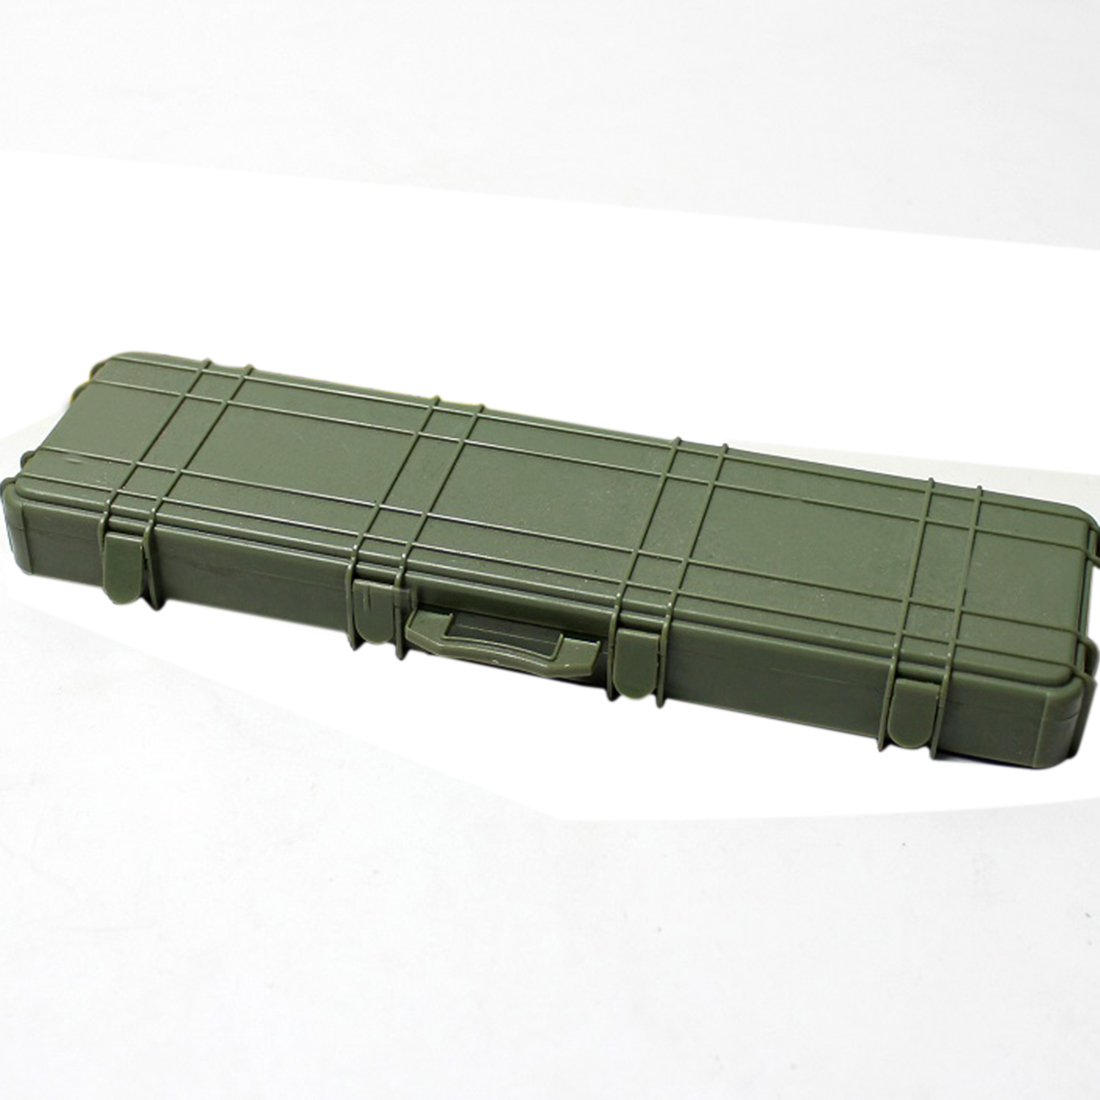 Soldier Model Weapon Storage Box Case Model Prop For 1:6 12 Doll Situation Simulation Action Figure Model Toys-Olive Drab/Yellow